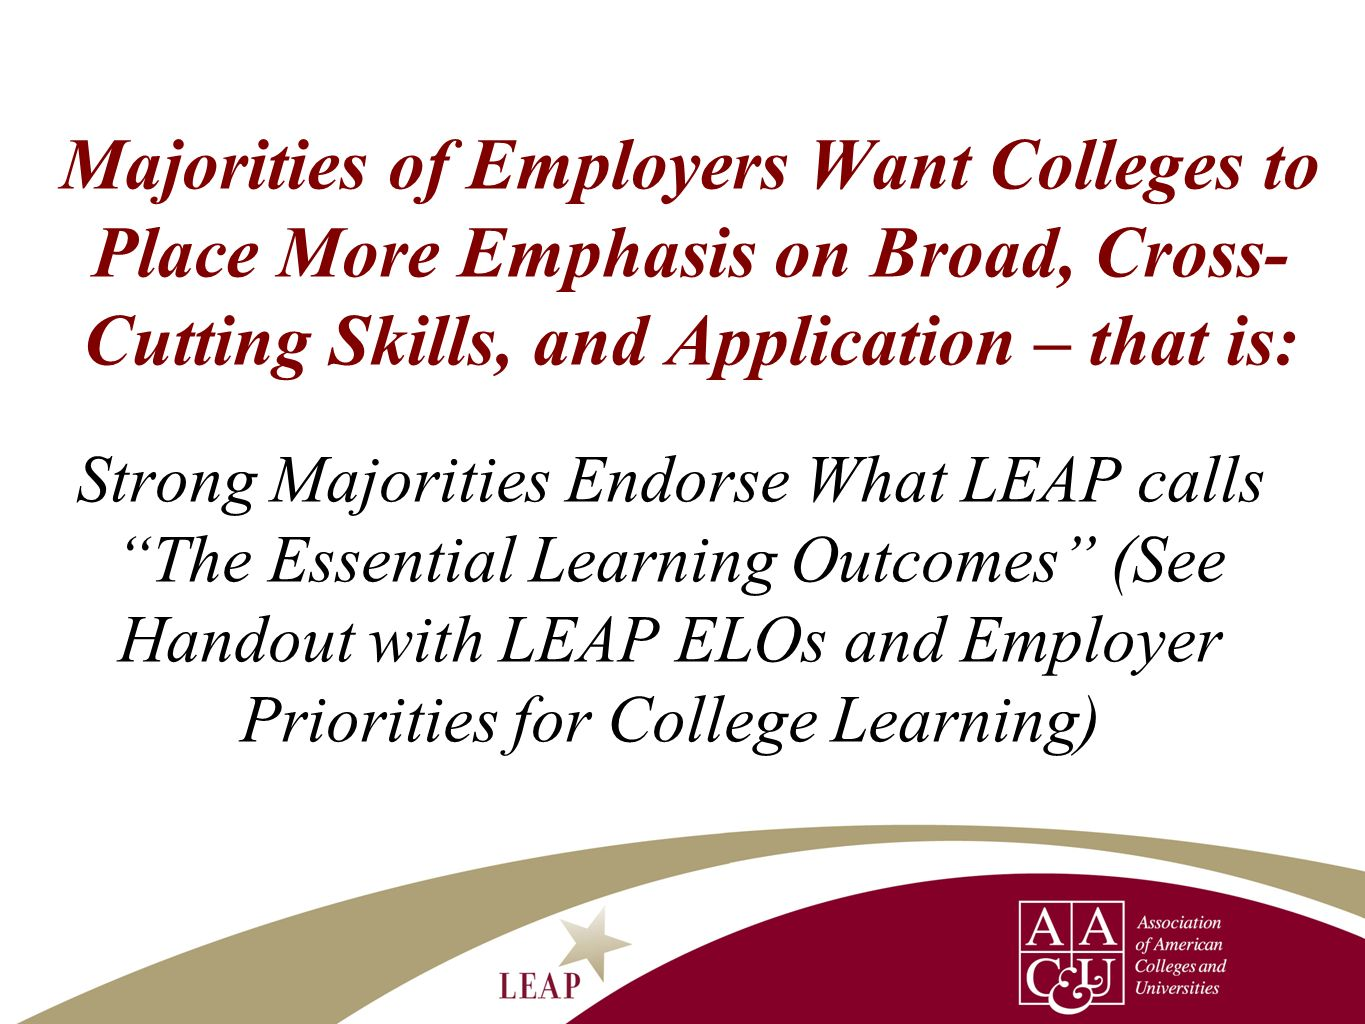 Majorities of Employers Want Colleges to Place More Emphasis on Broad, Cross-Cutting Skills, and Application – that is: